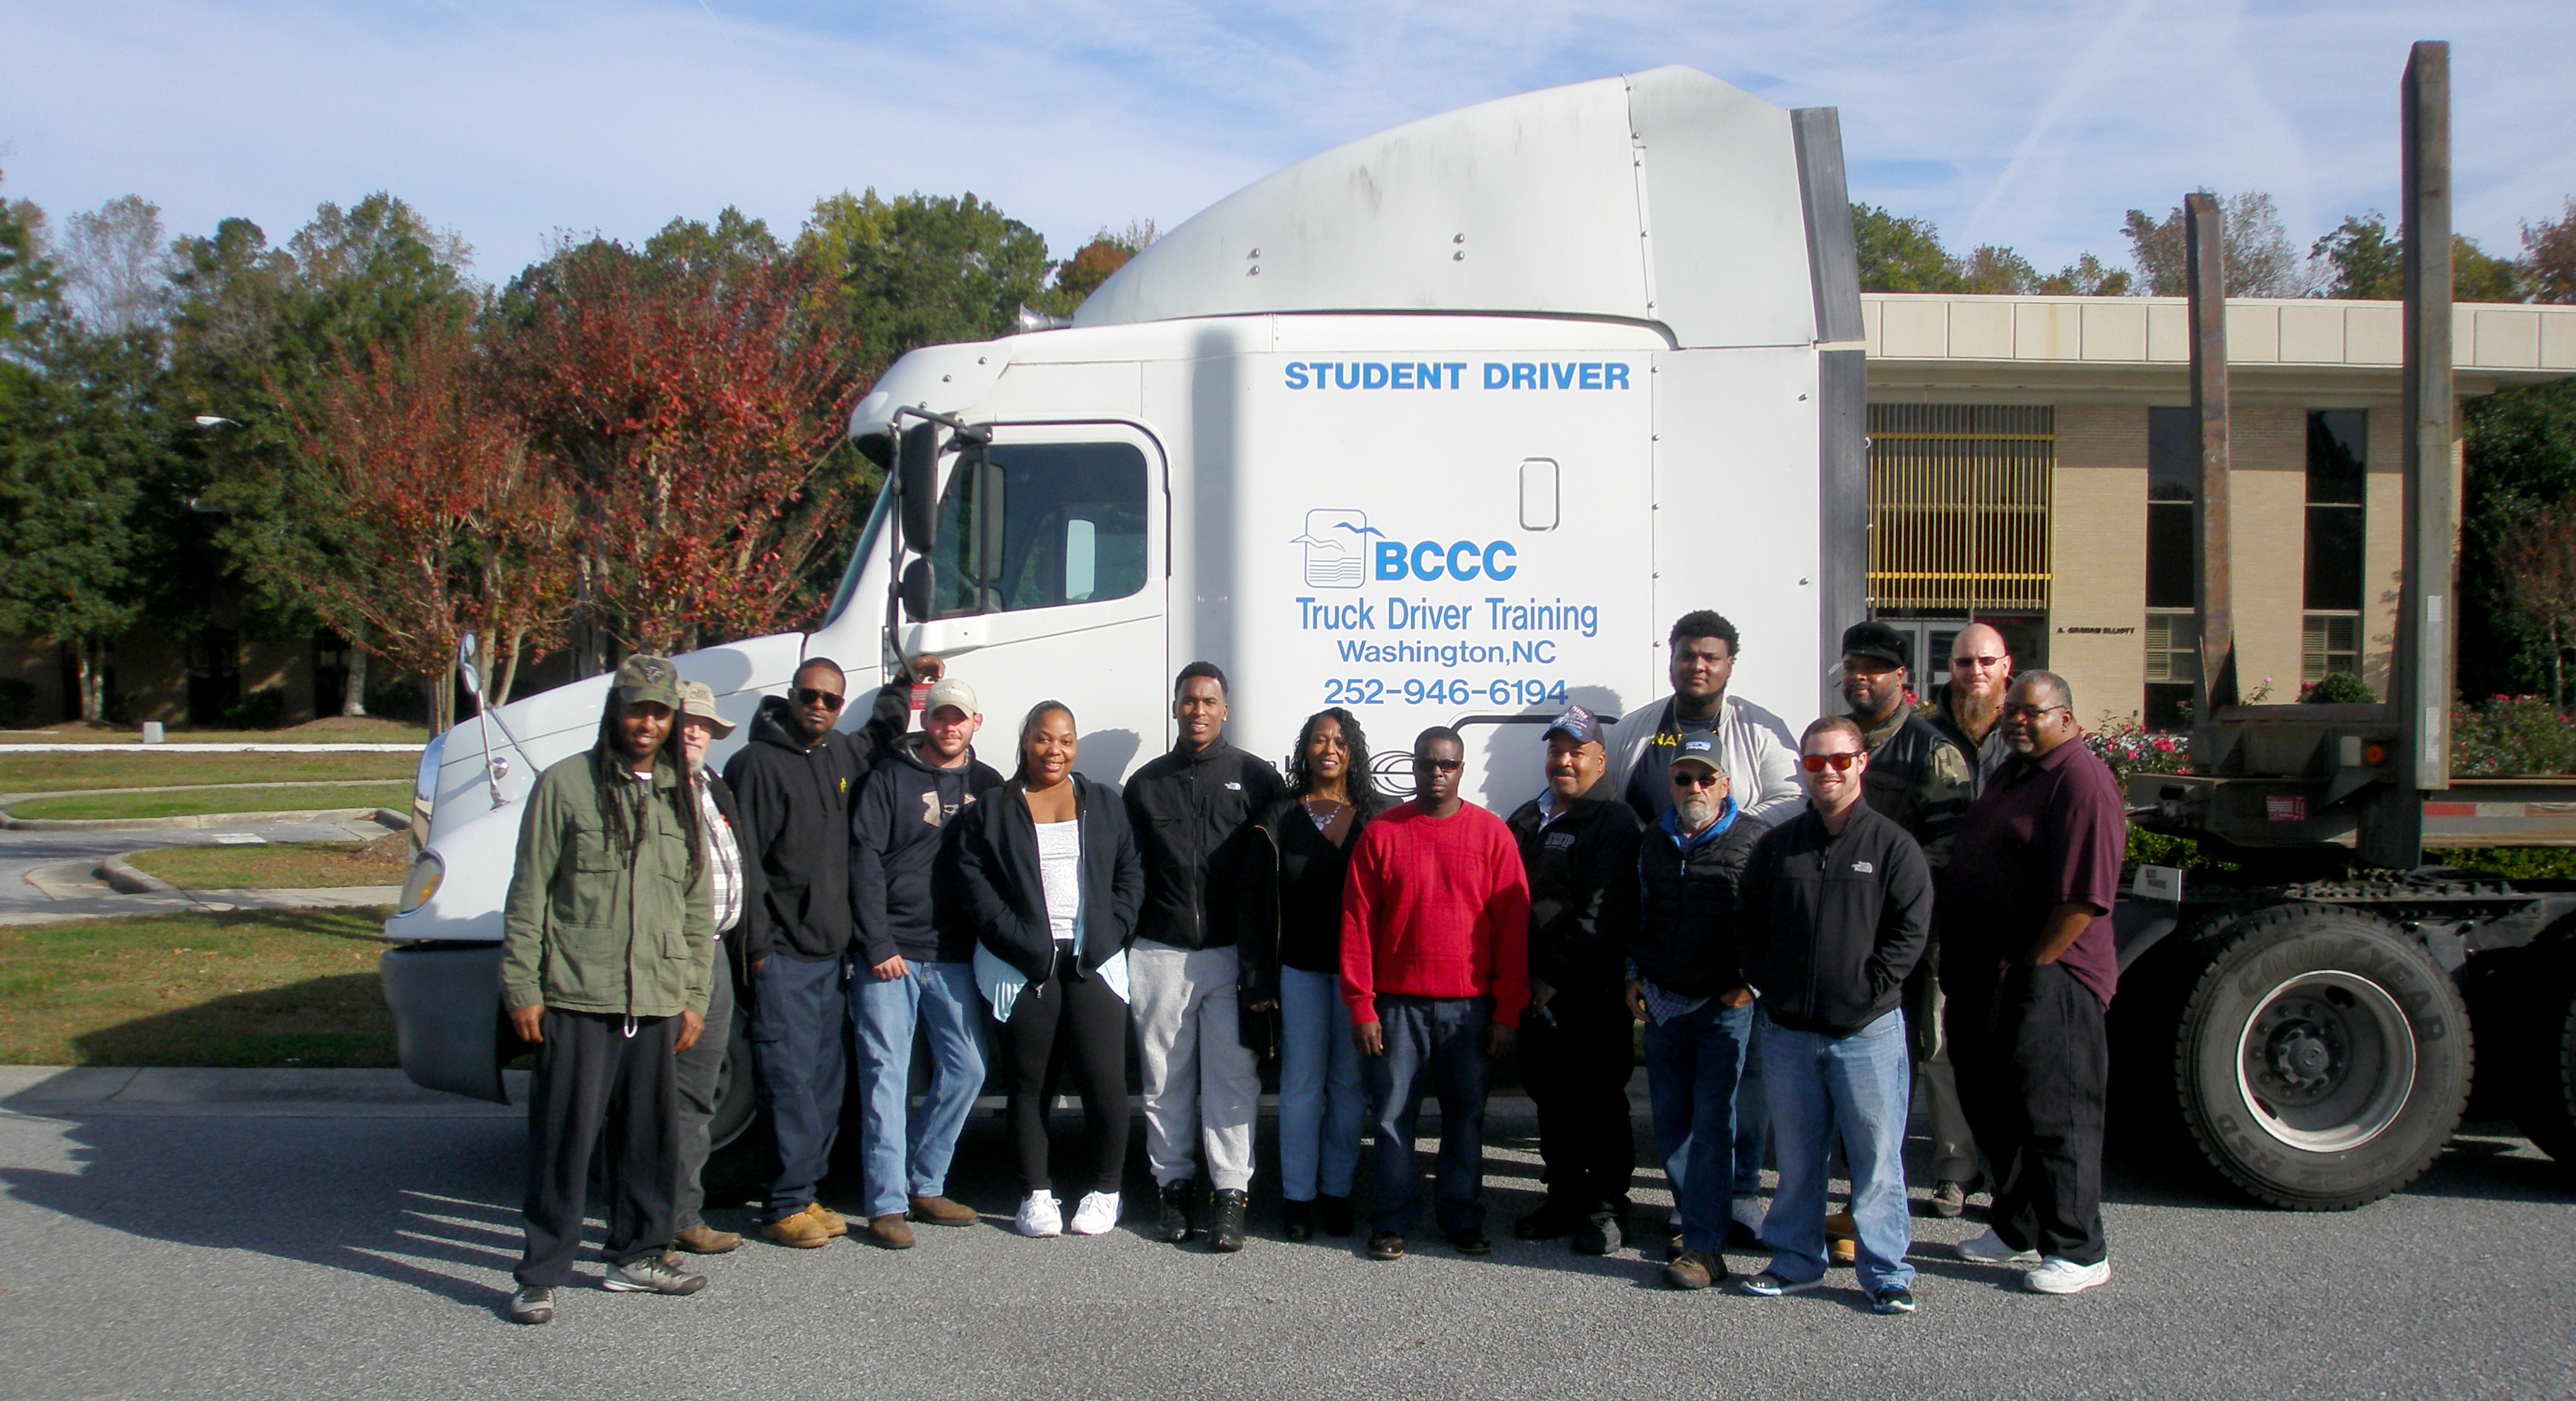 A dozen students stand in front of a truck cab in front of the college.